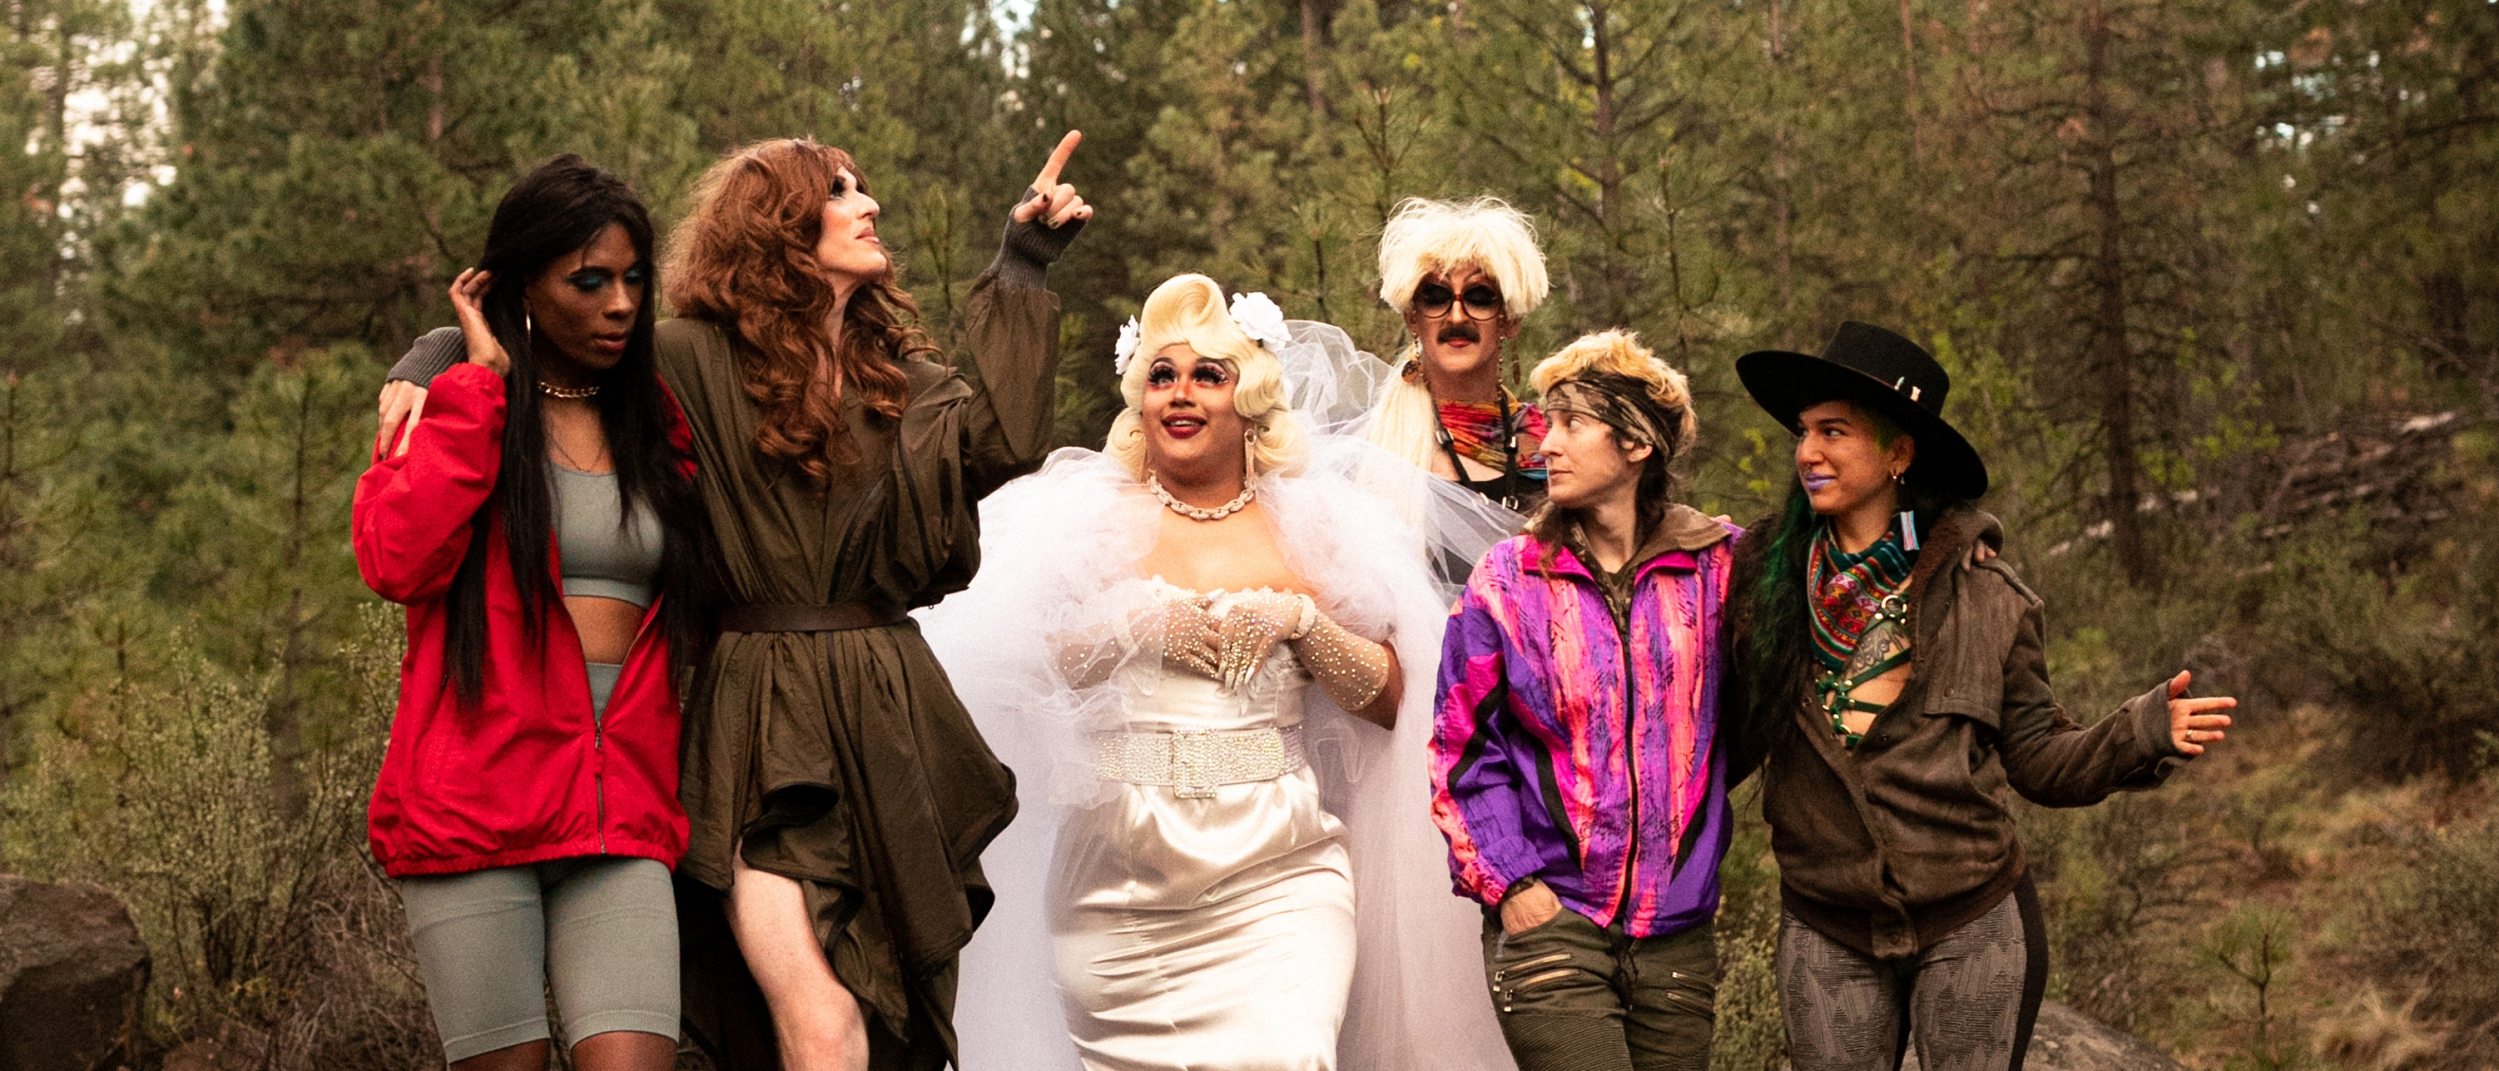 Photo of Pattie Gonia and friends on their nature hike experience